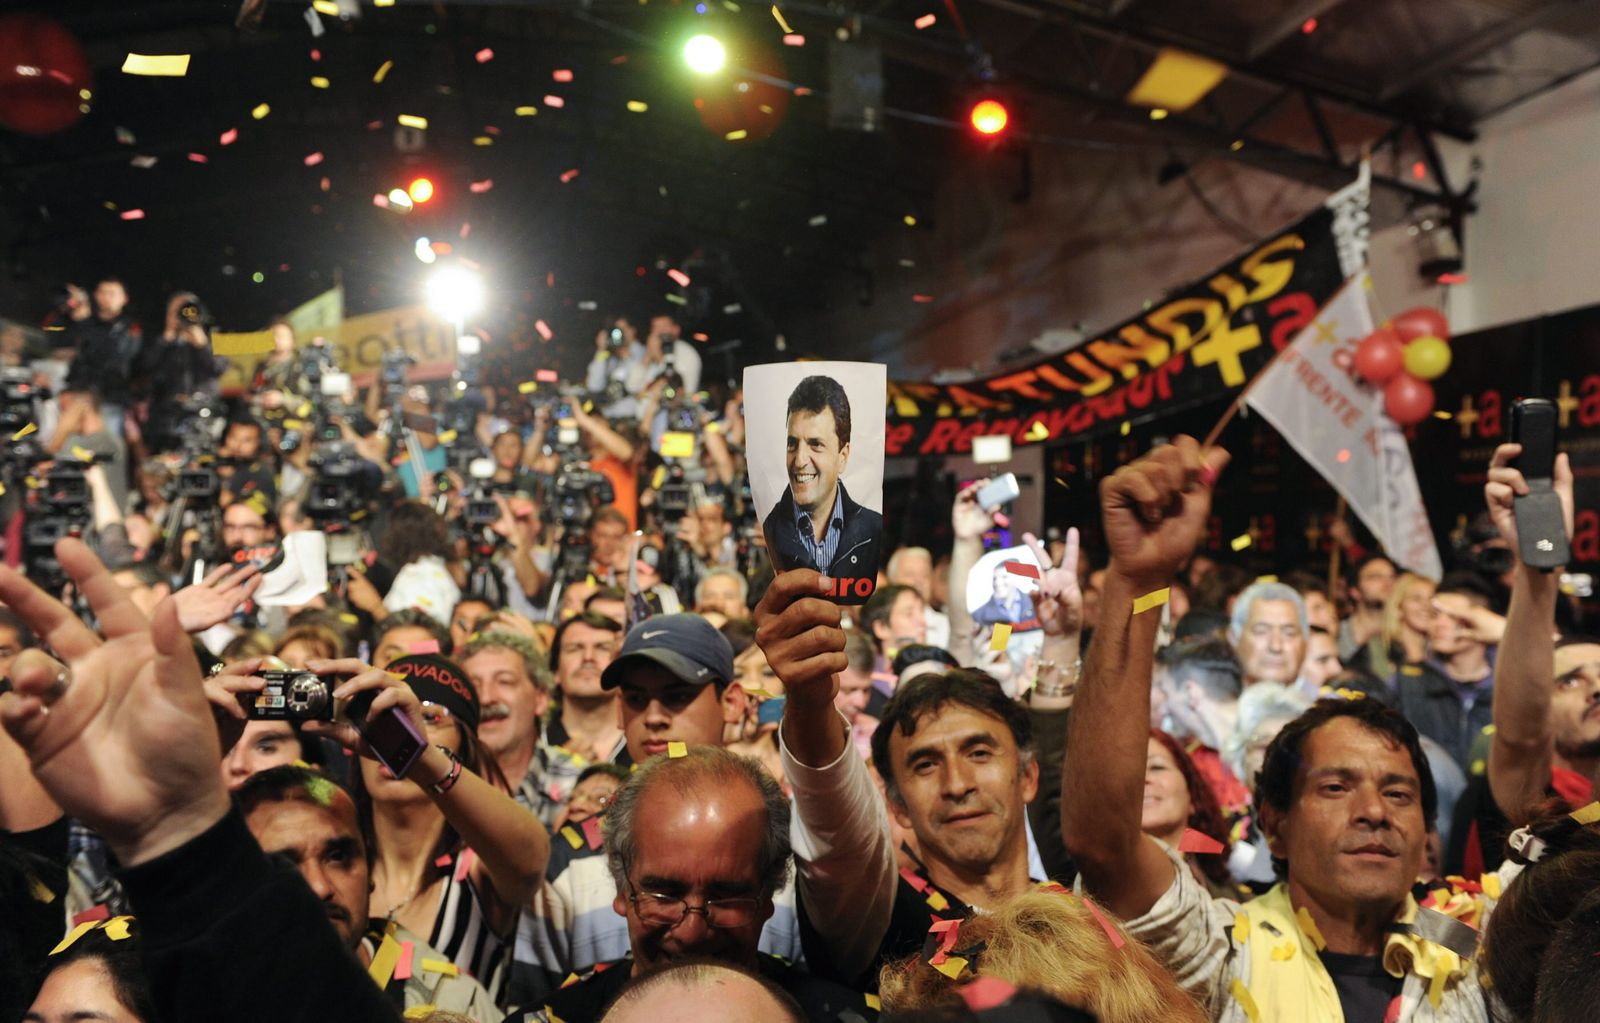 Oposition candidate Massa wins in the mayor Argentine district